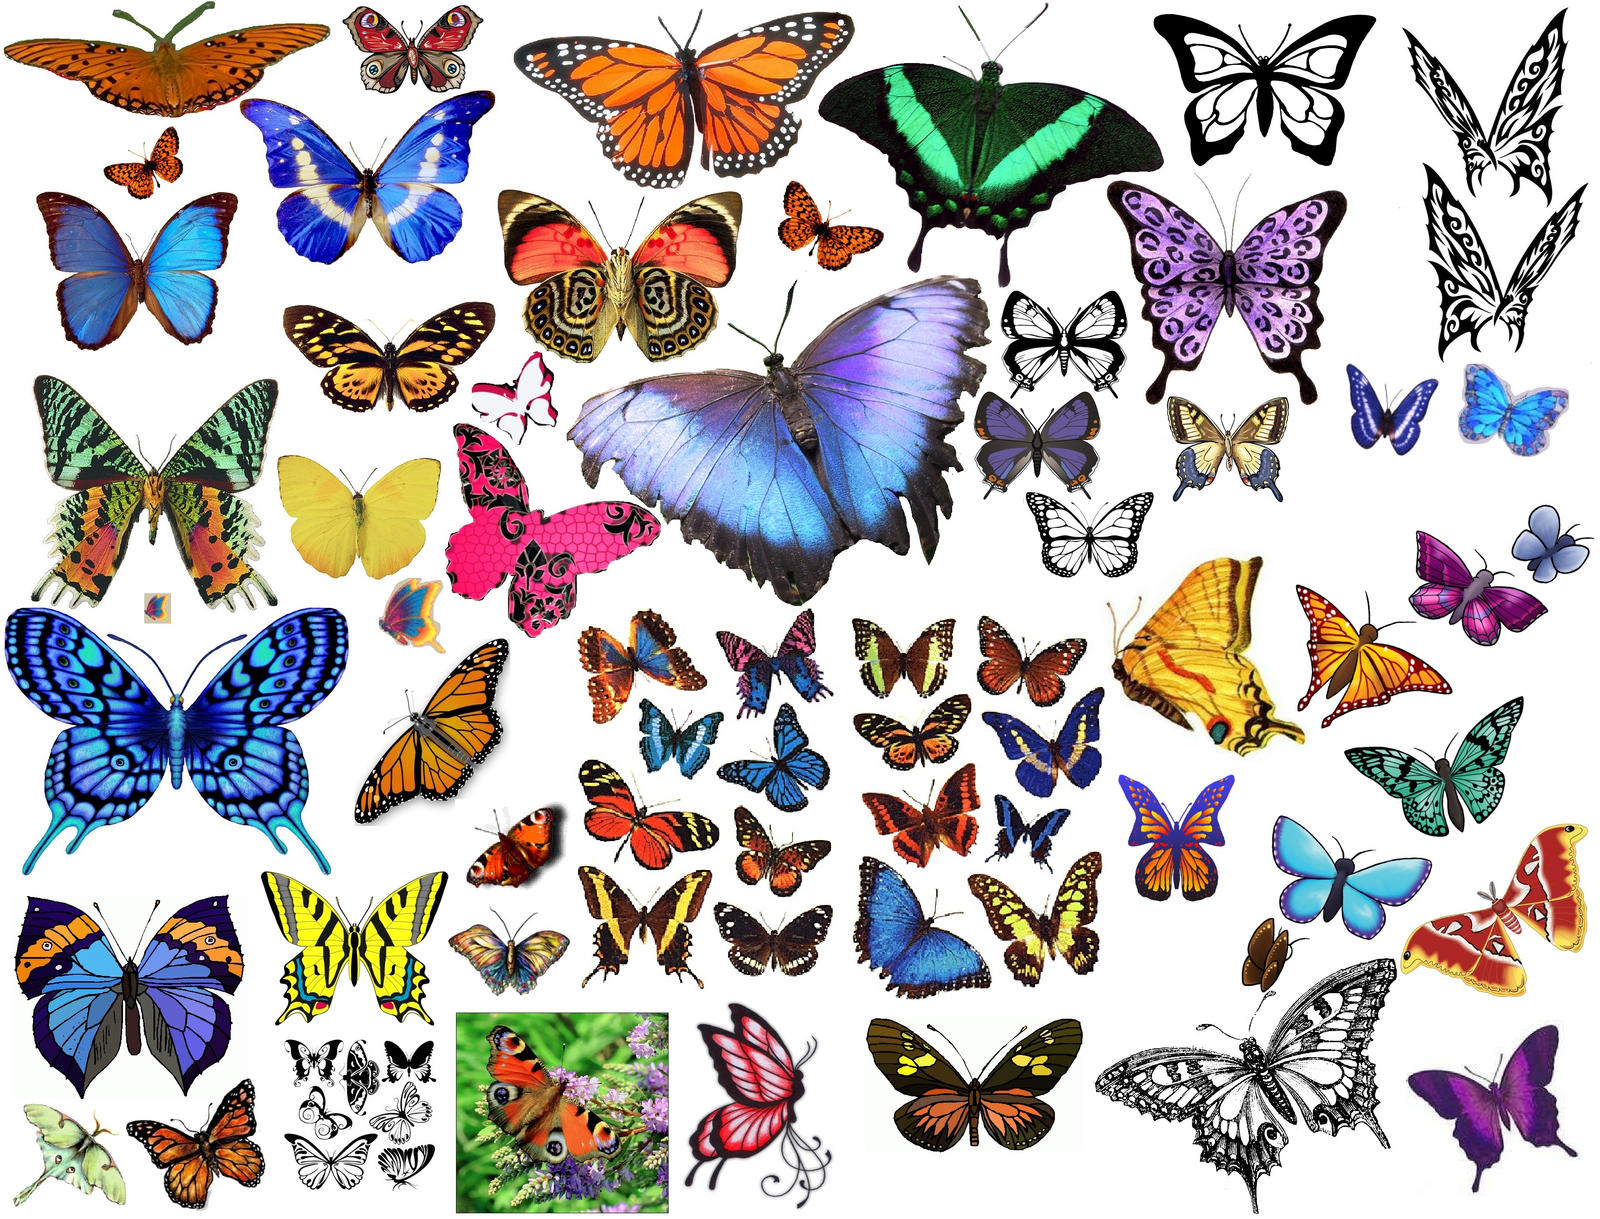 Free drawings of butterflies pics of butterflies free drawings of butterflies